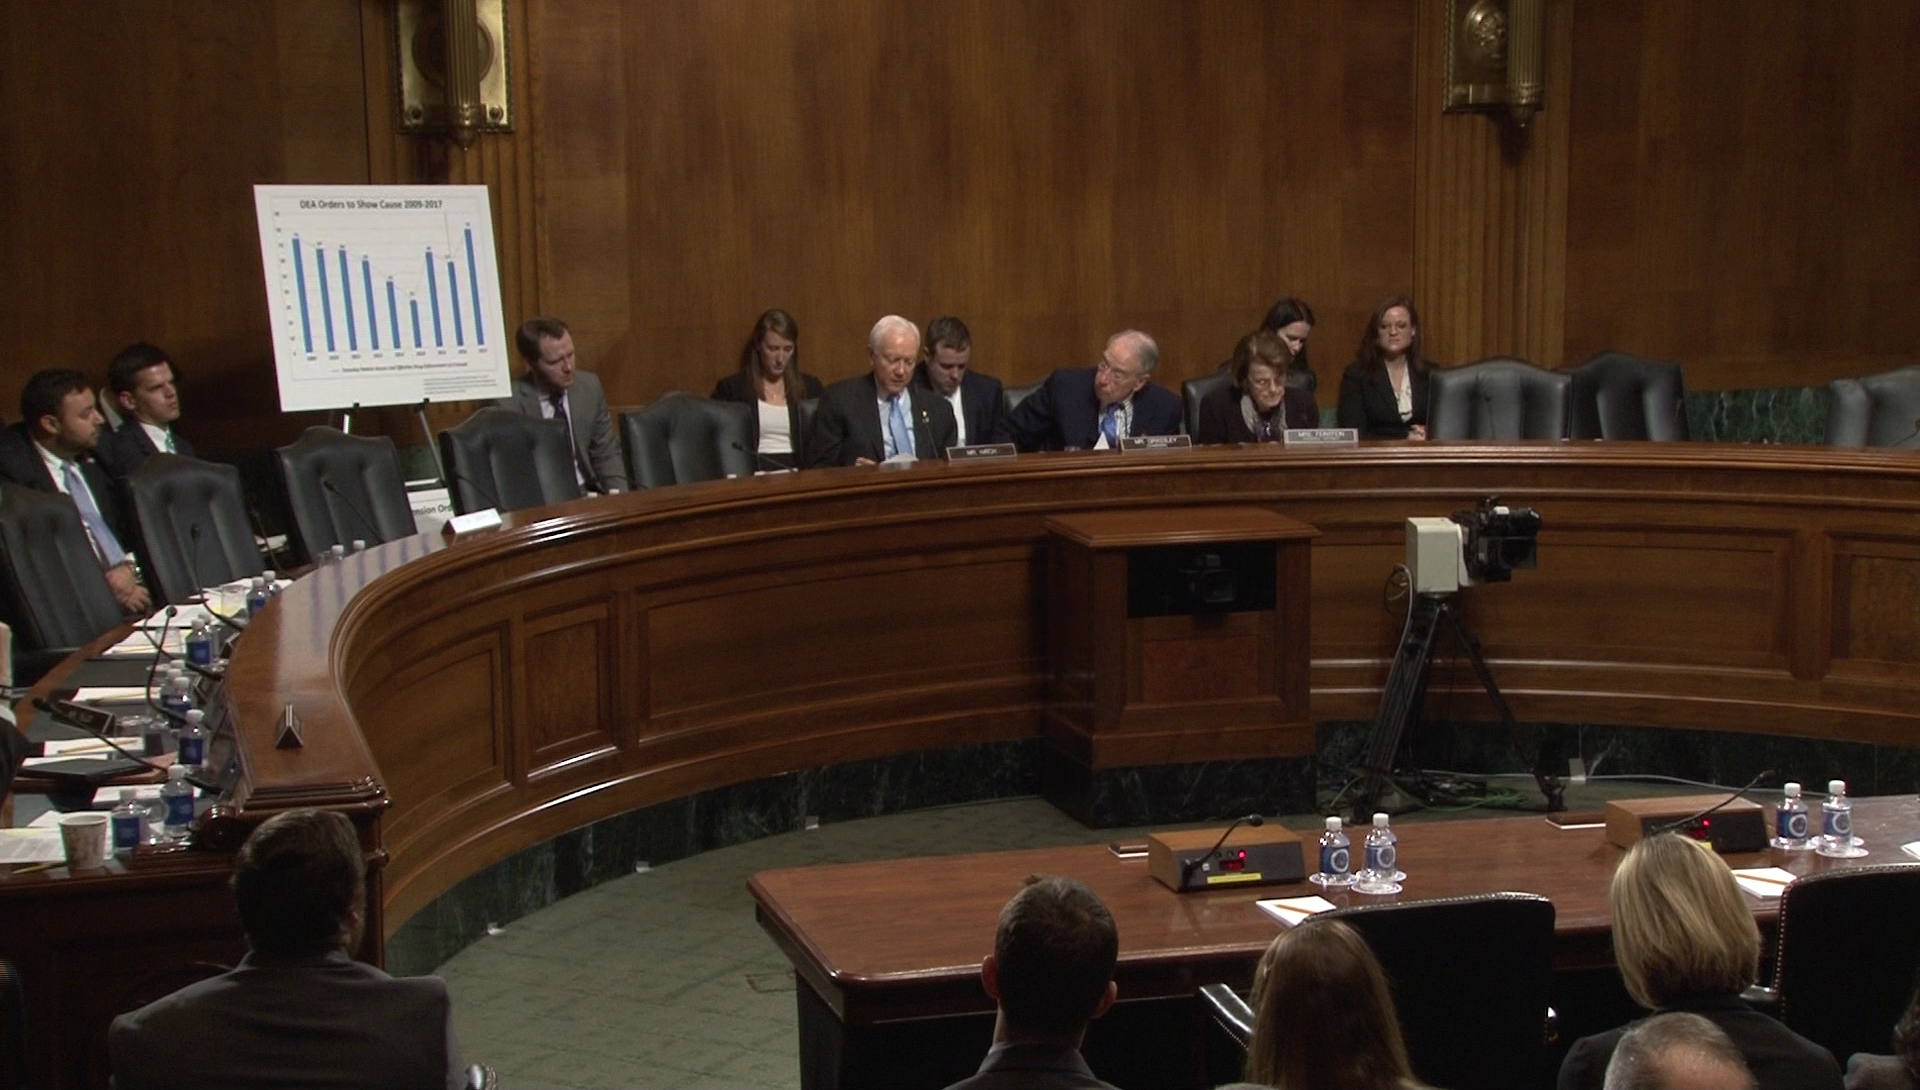 FILE: The Senate Judiciary Committee hears testimony from the Drug Enforcement Administration about whether it has the tools needed to combat the opioid crisis.{&amp;nbsp;} Photo taken on Capitol Hill, Tuesday, December 12, 2017. (Sinclair Broadcast Group)<p></p>